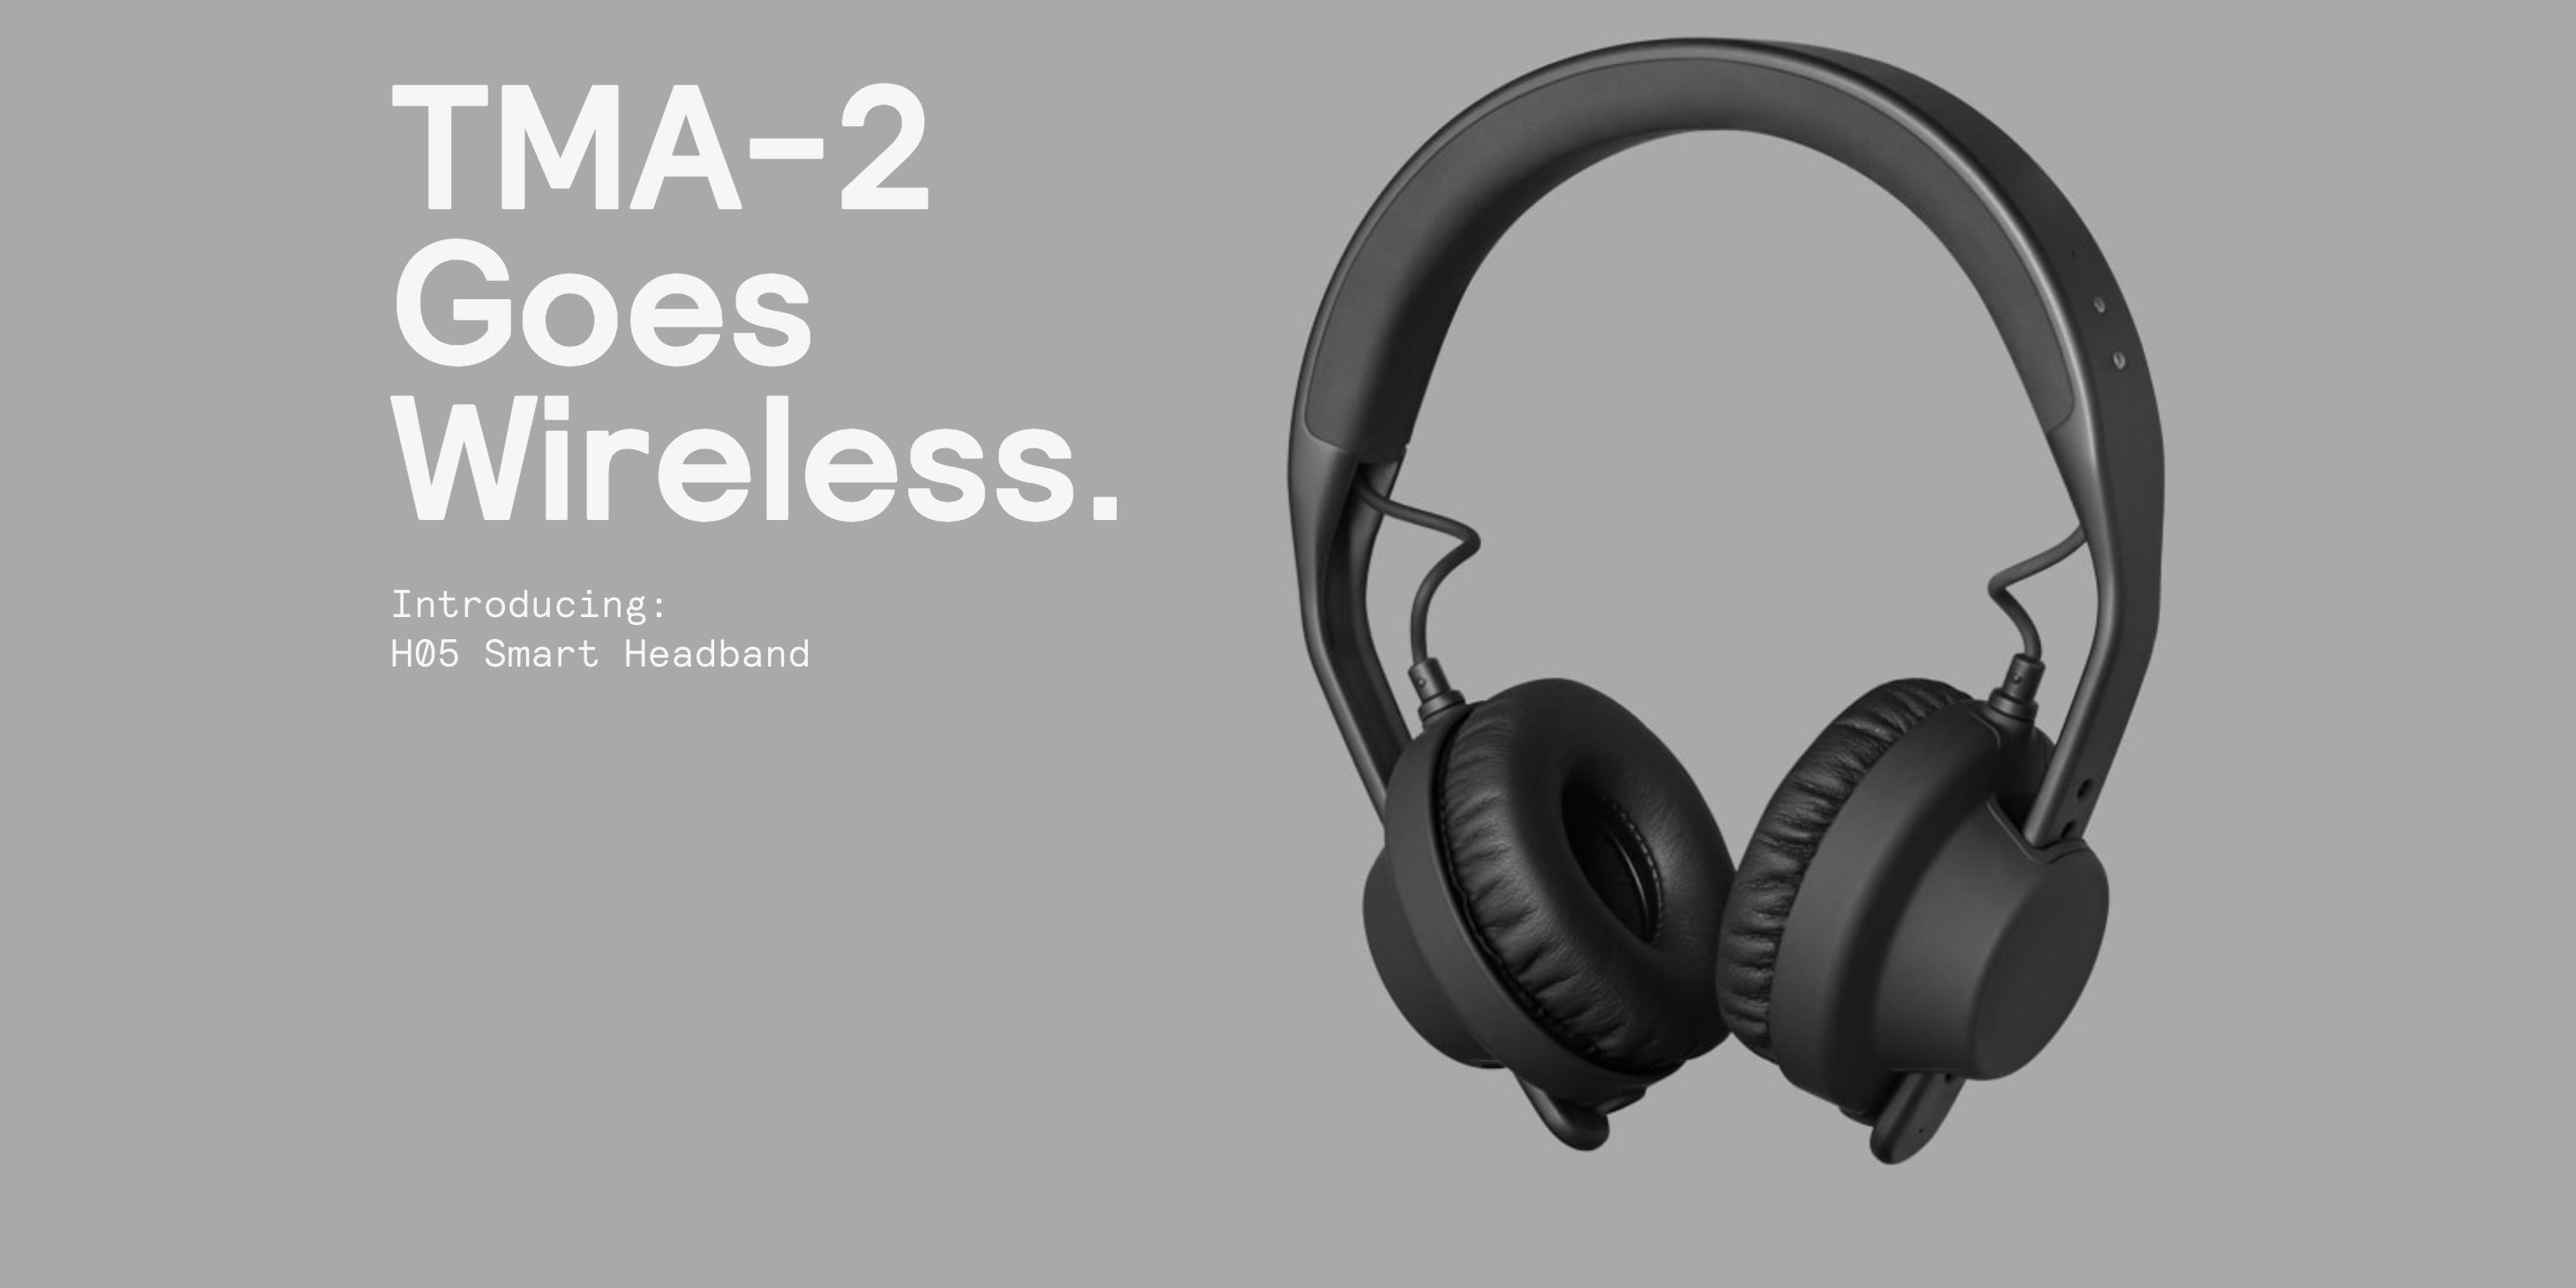 tma-2-headphones